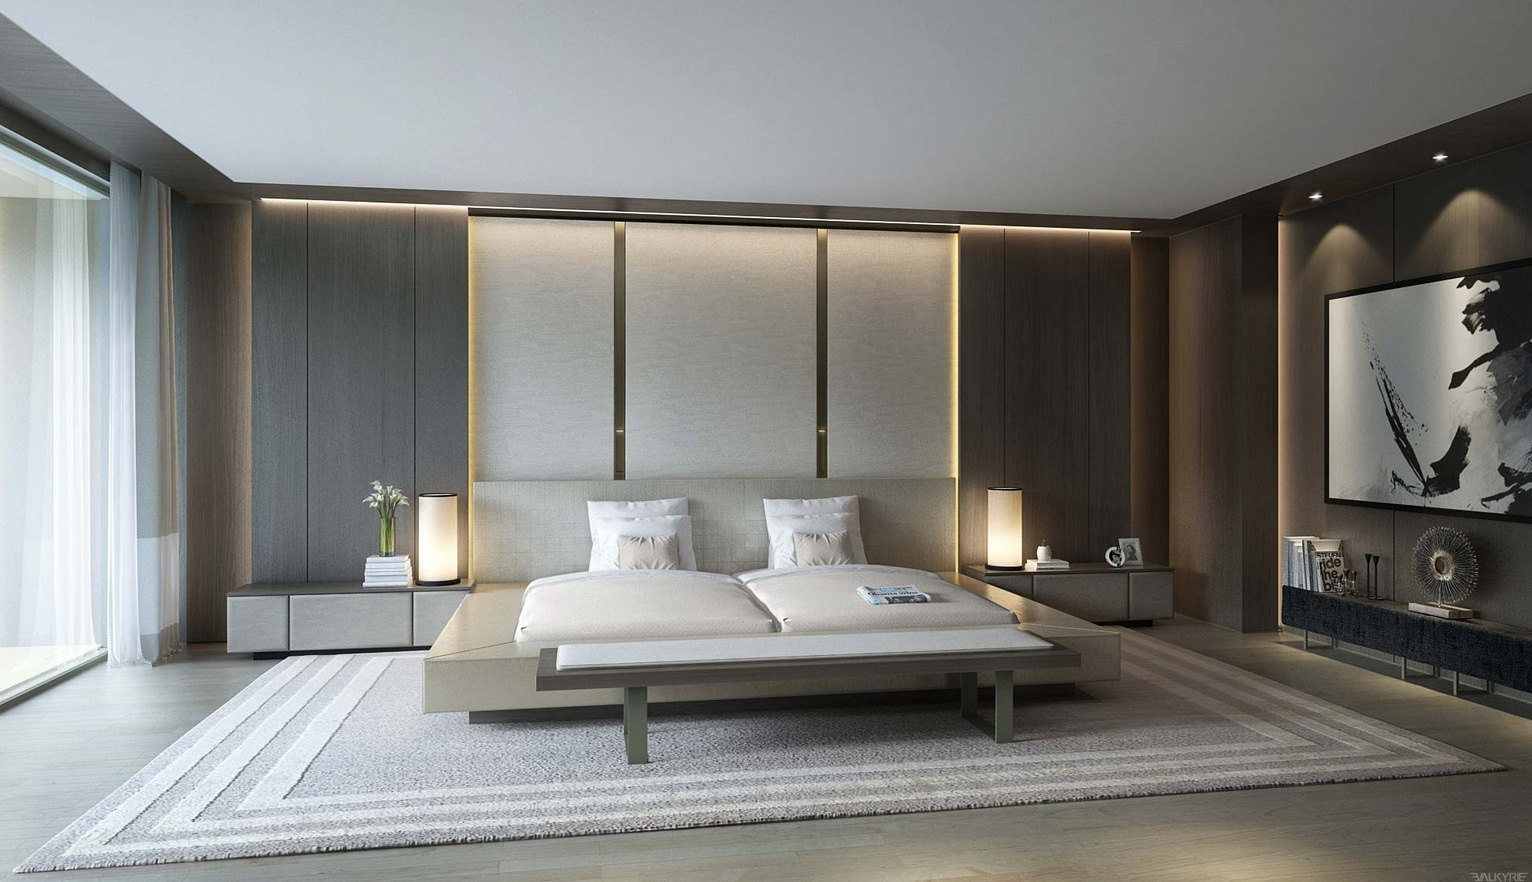 21 cool bedrooms for clean and simple design inspiration Clean modern interior design